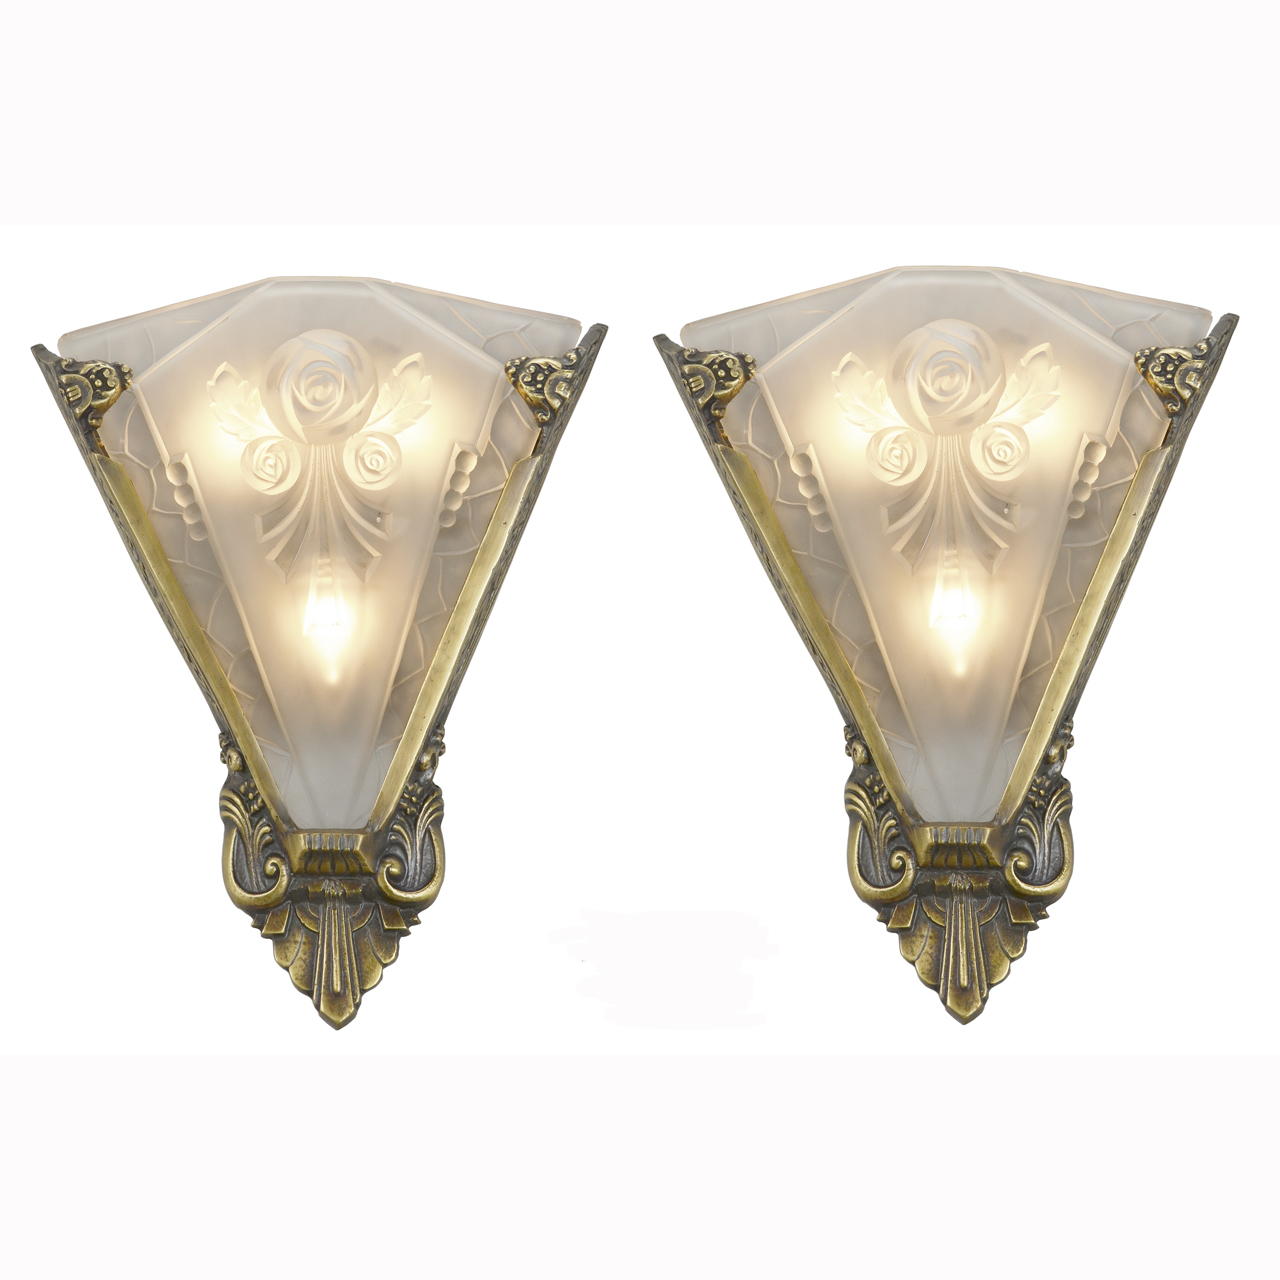 Large Lamps For Sale Pair Of Large Wall Sconces Lighting With Antique French